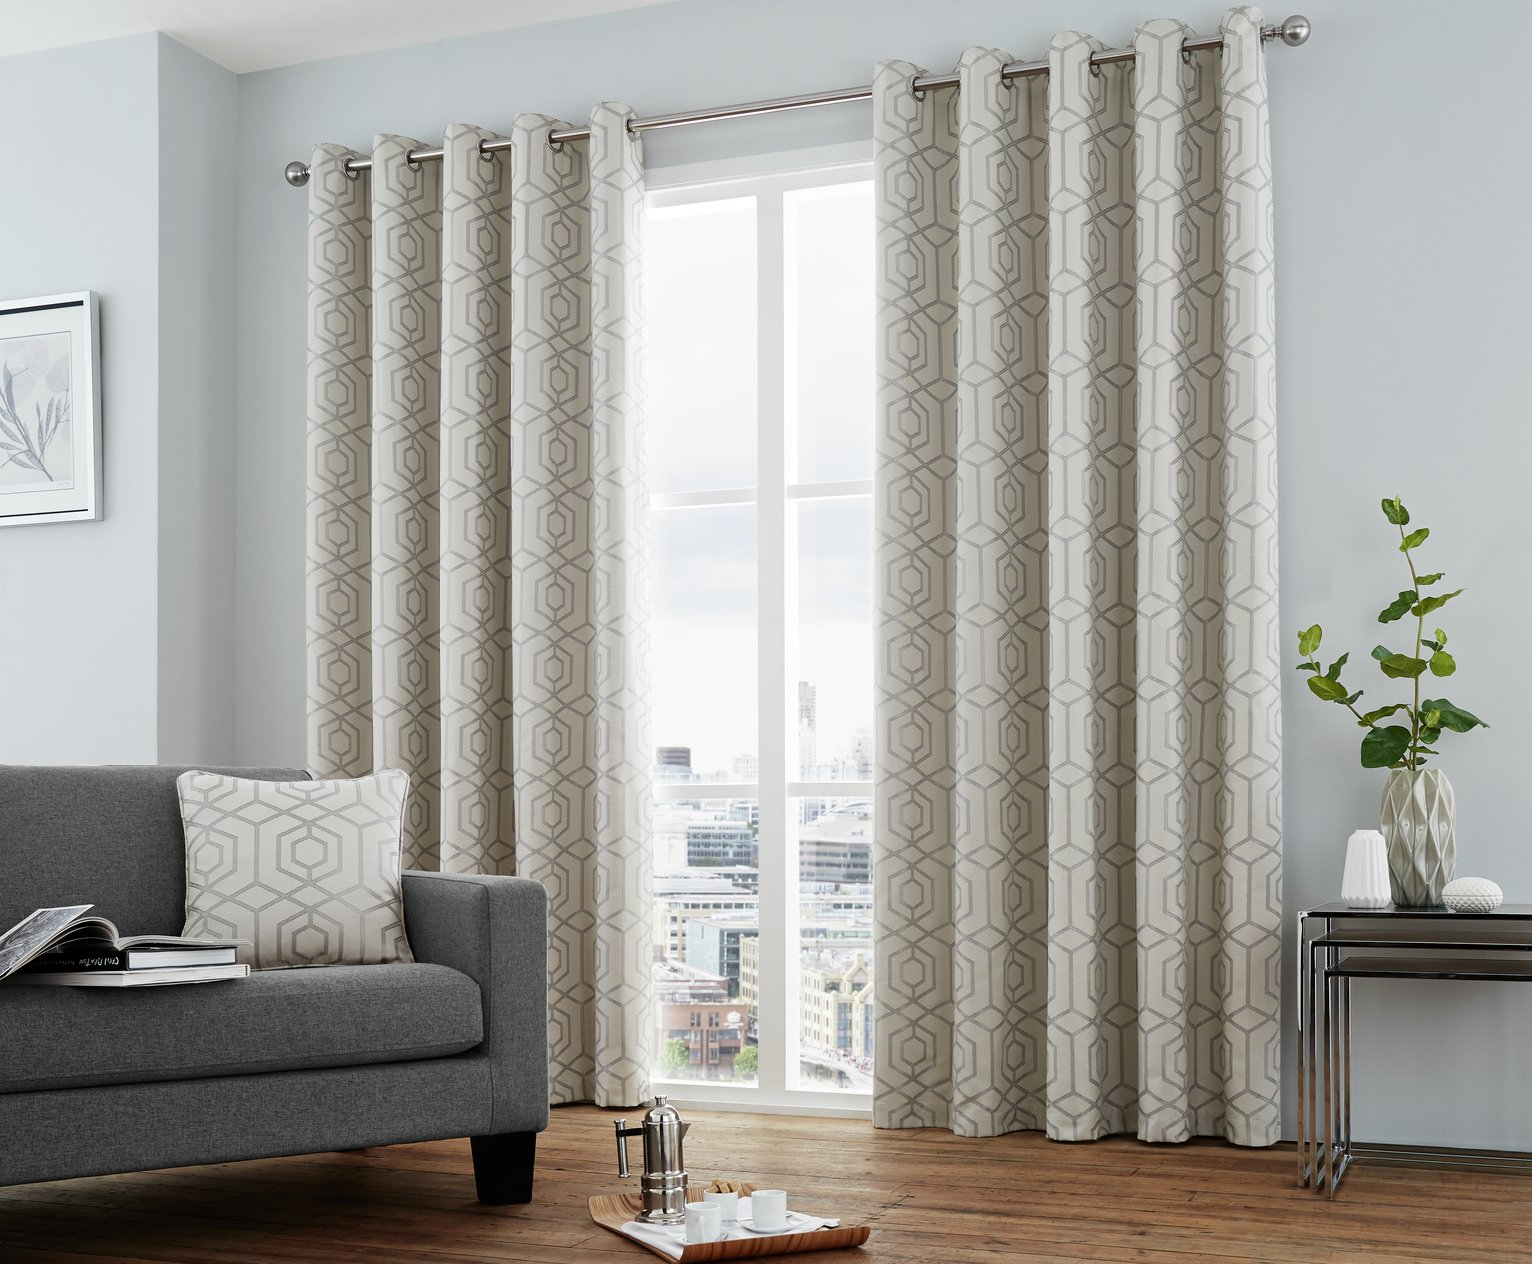 Image of Curtina Camberwell Eyelet Curtains - 168x183cm - Silver